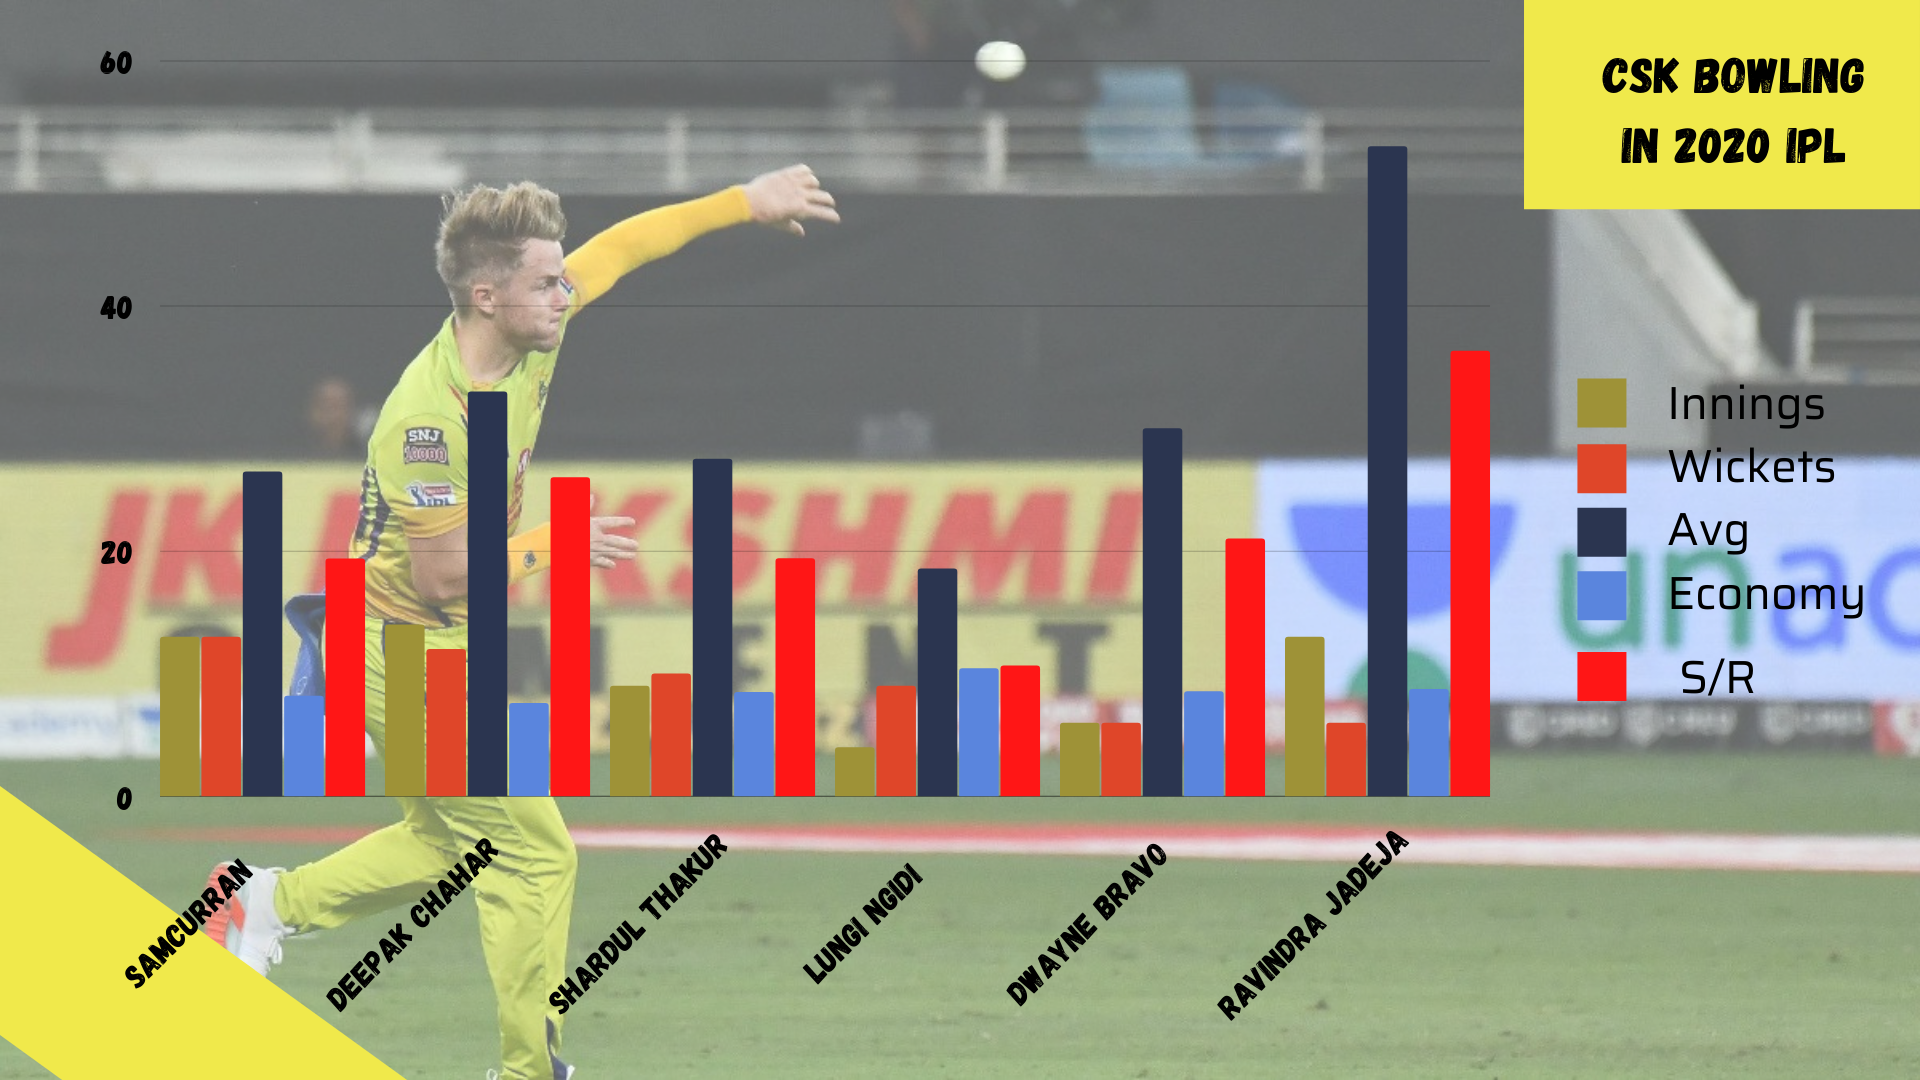 csk bowling in 2020 ipl-cricket analysis stats